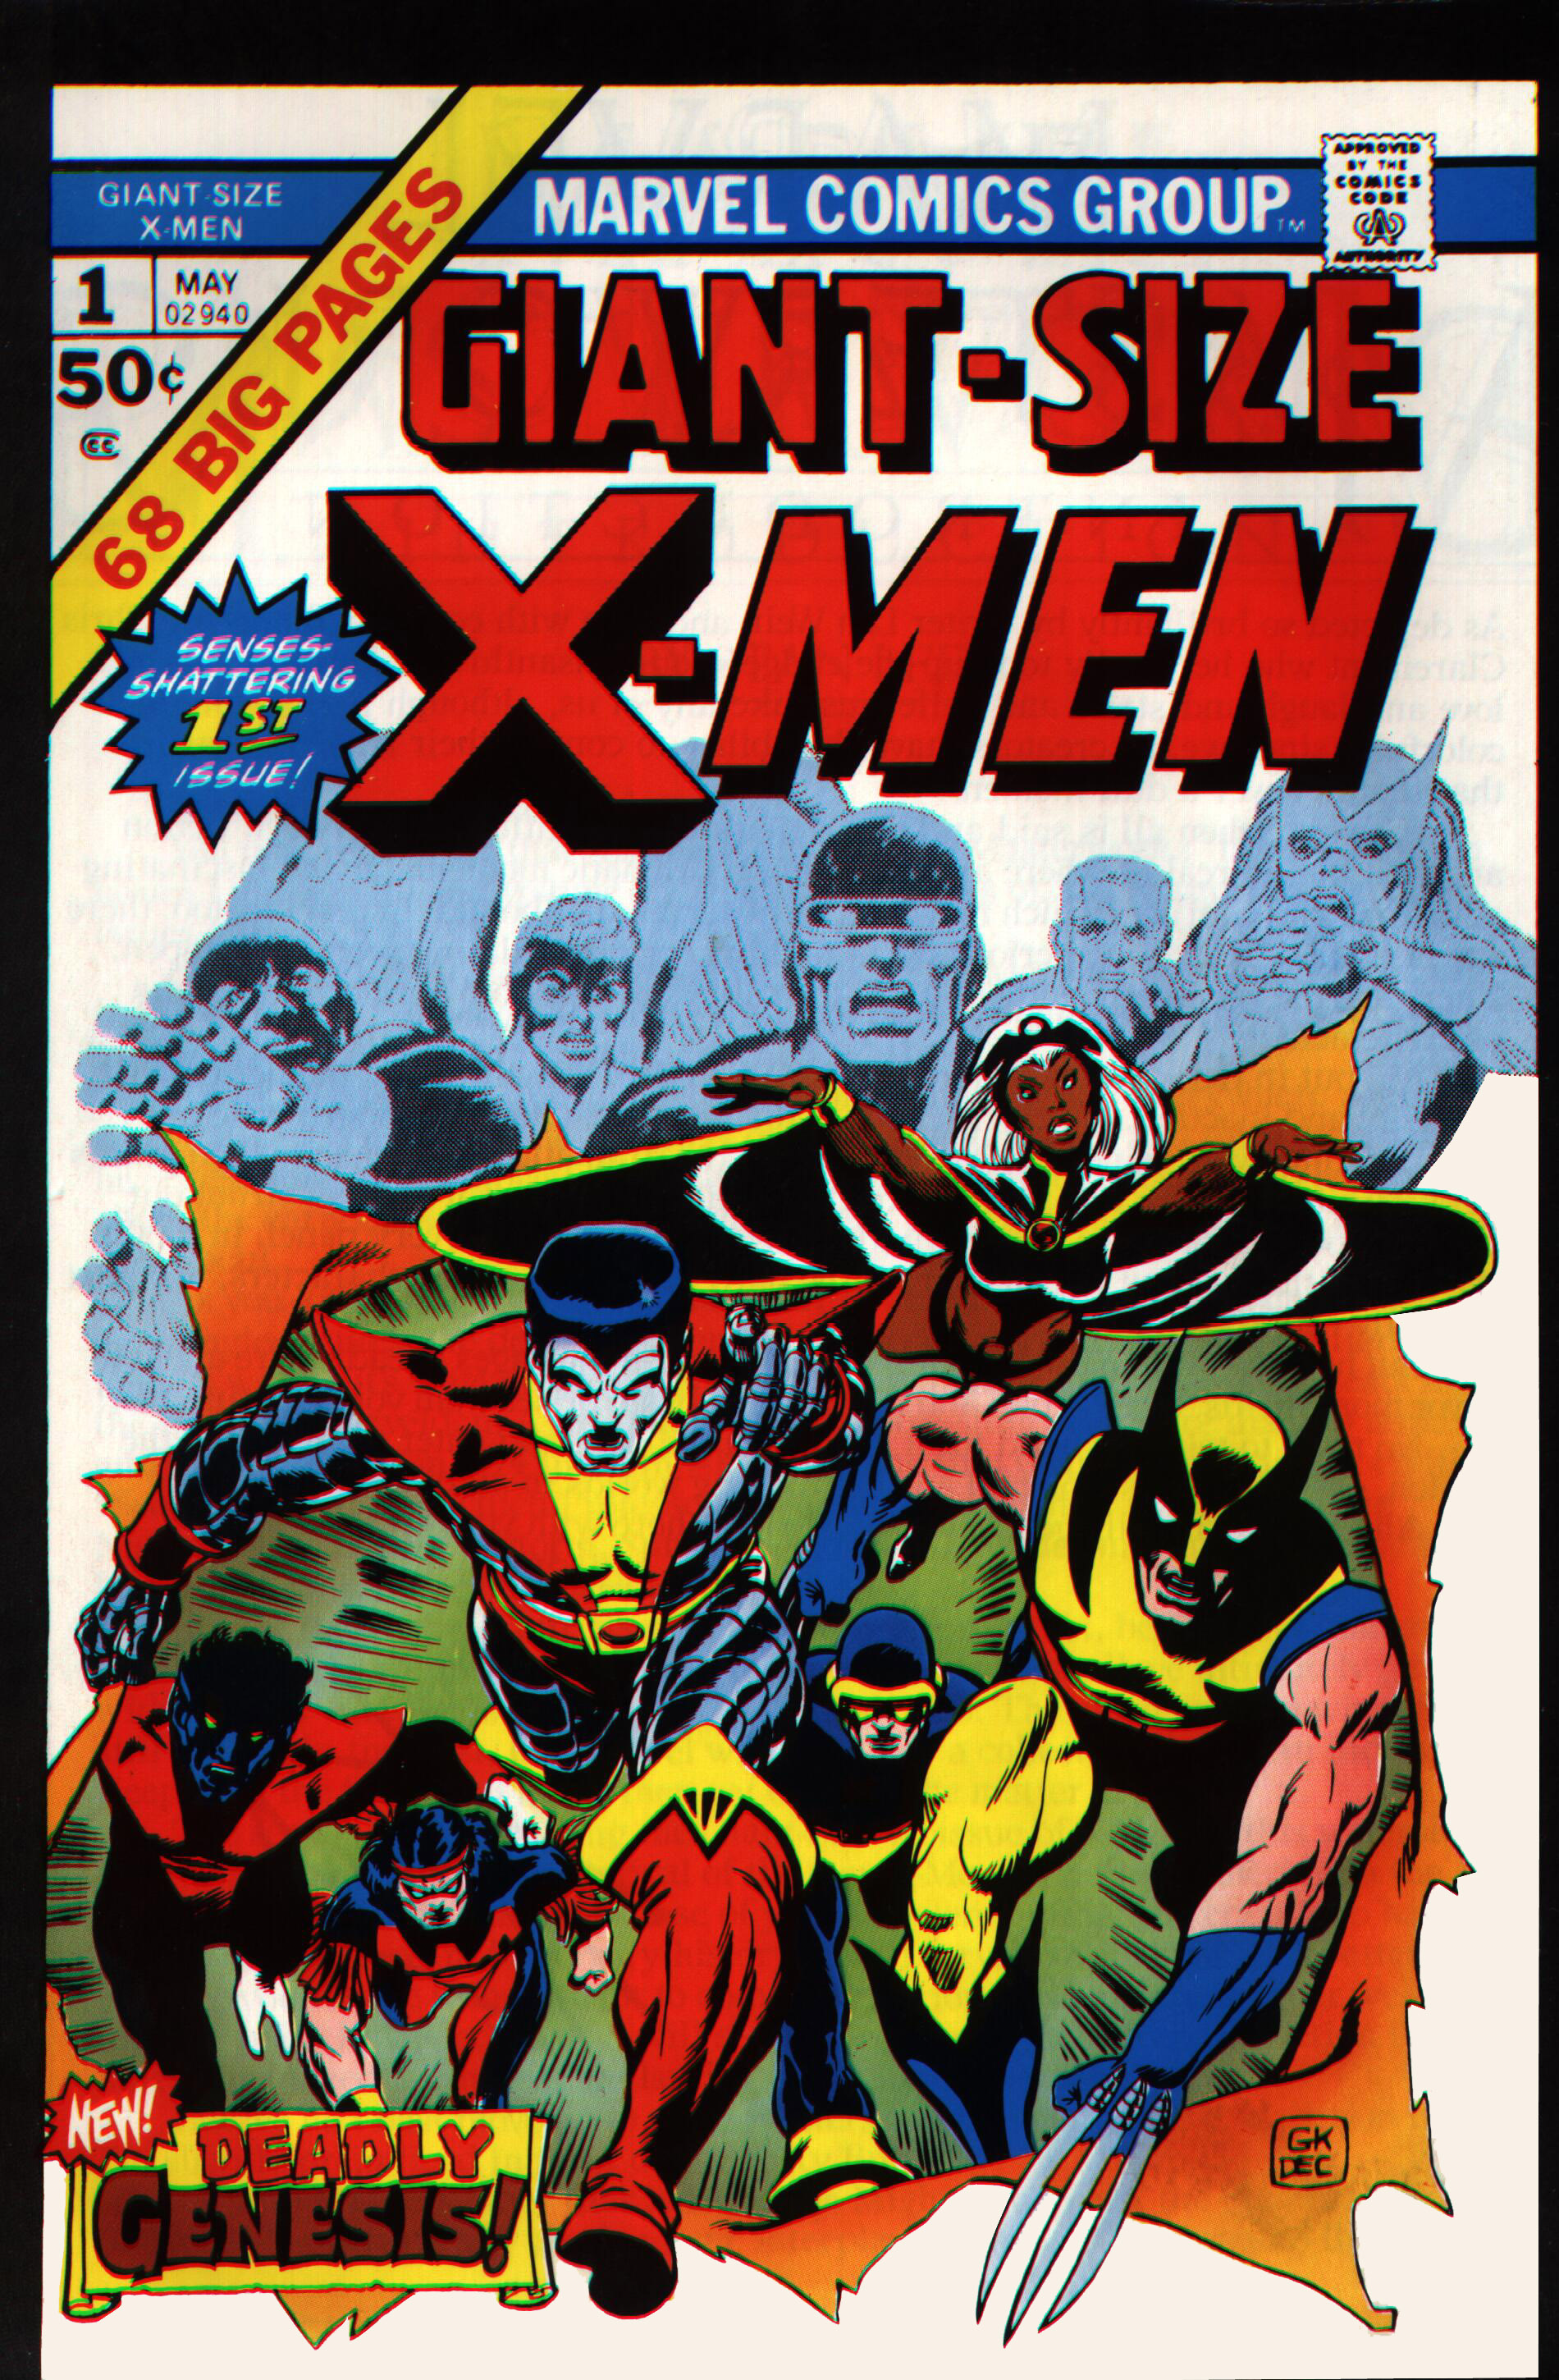 Read online Giant-Size X-Men comic -  Issue #1 - 1